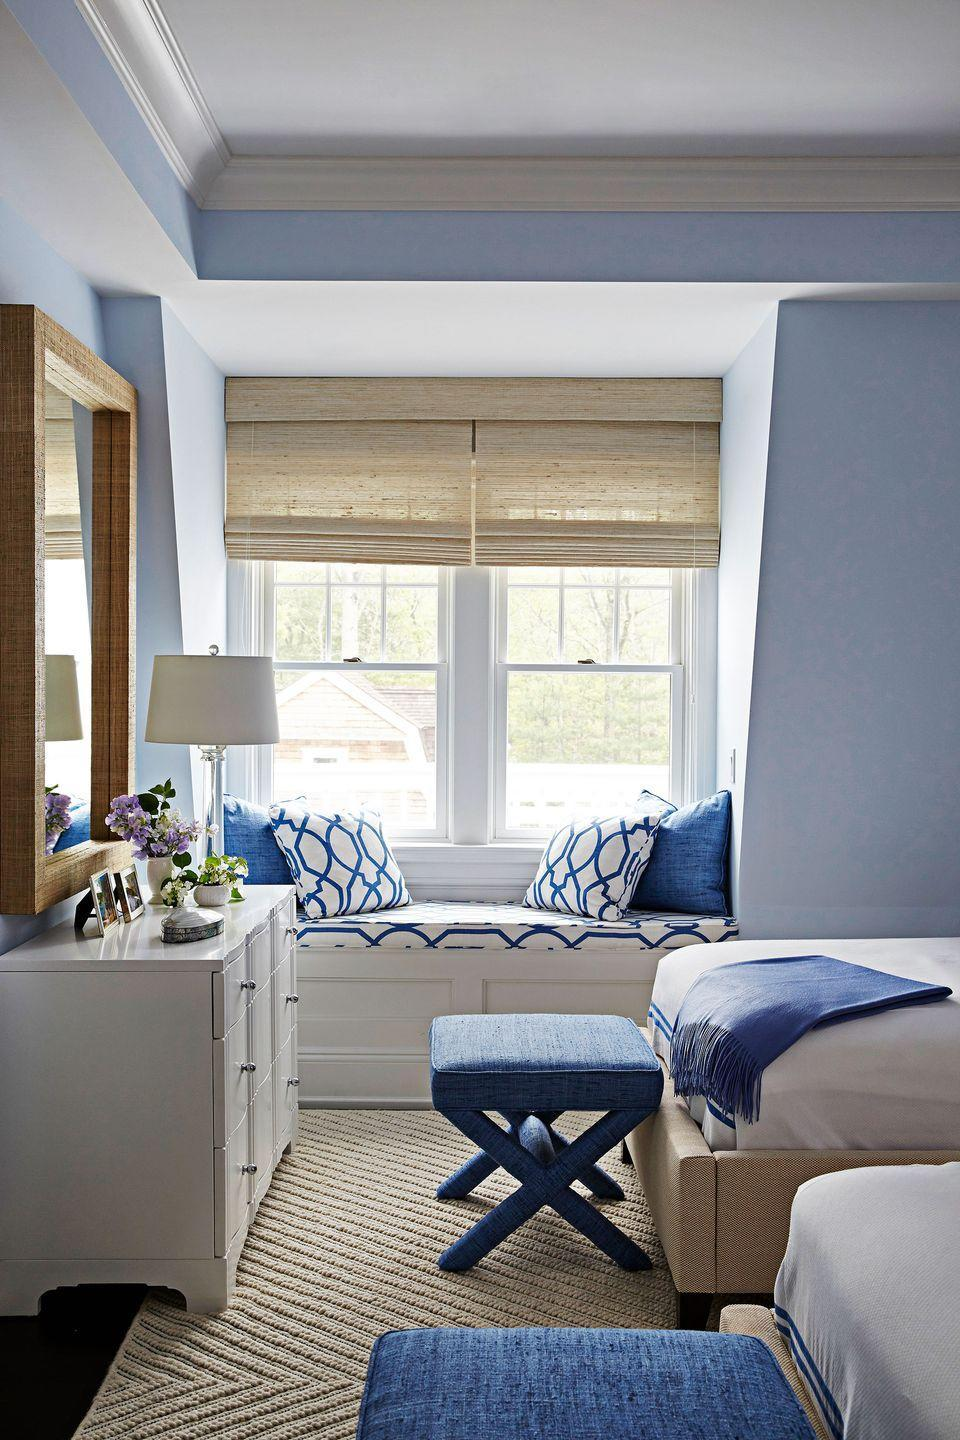 <p>A built-in reading nook in the main bedroom will earn you some major bonus points, style-wise and beyond. It gives the space added intrigue and makes it feel more personalized. Just add throw pillows. </p>